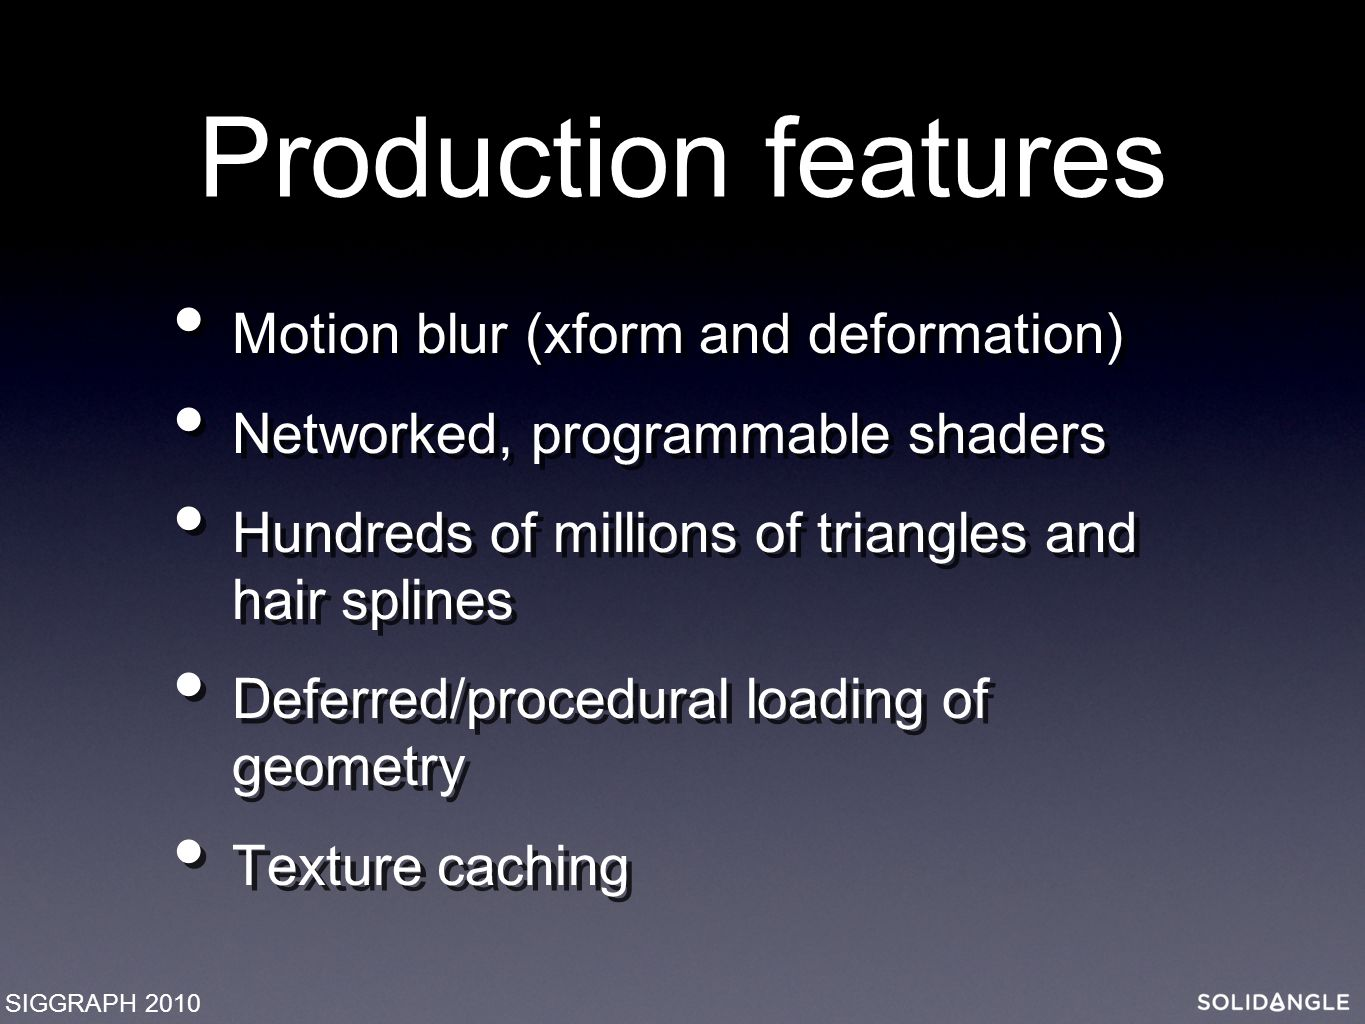 Production features Motion blur (xform and deformation) Networked, programmable shaders Hundreds of millions of triangles and hair splines Deferred/procedural loading of geometry Texture caching Motion blur (xform and deformation) Networked, programmable shaders Hundreds of millions of triangles and hair splines Deferred/procedural loading of geometry Texture caching SIGGRAPH 2010